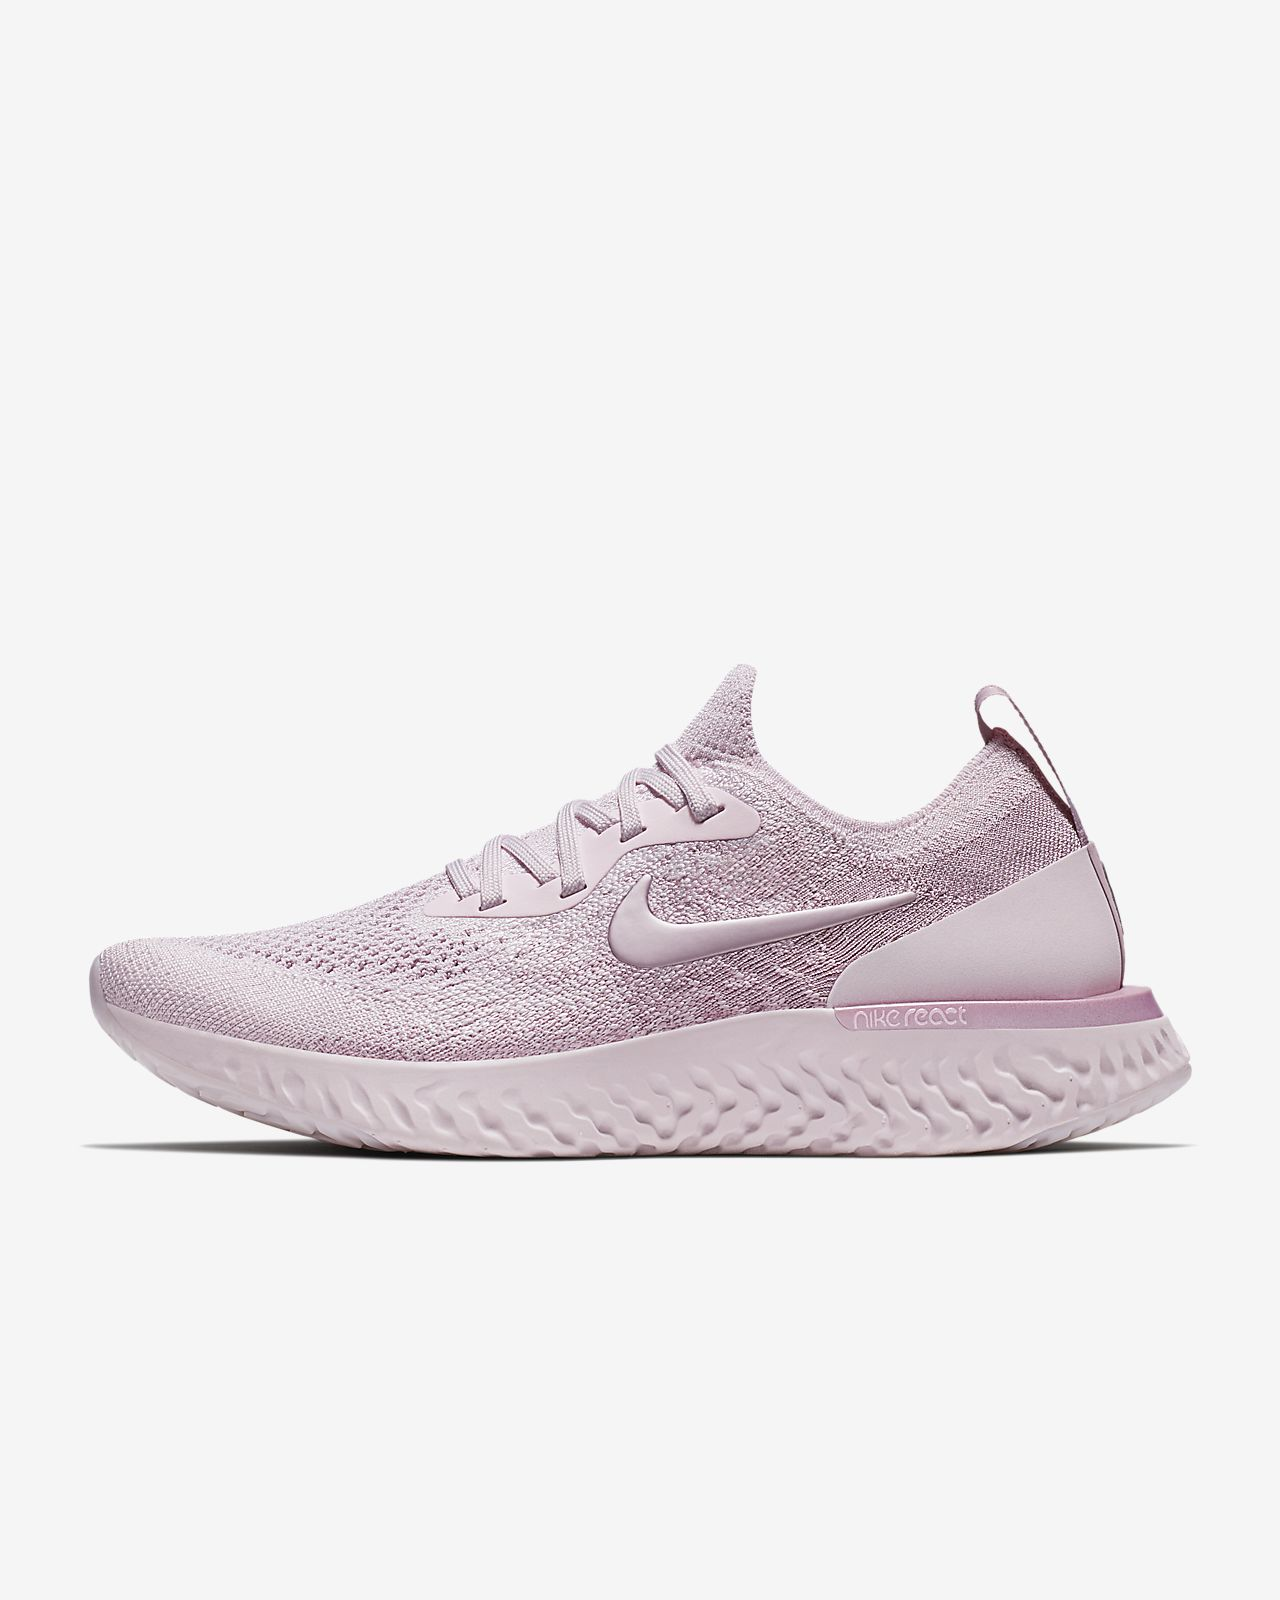 7b59797e2243 ... reduced nike epic react flyknit womens running shoe e85b9 e055e